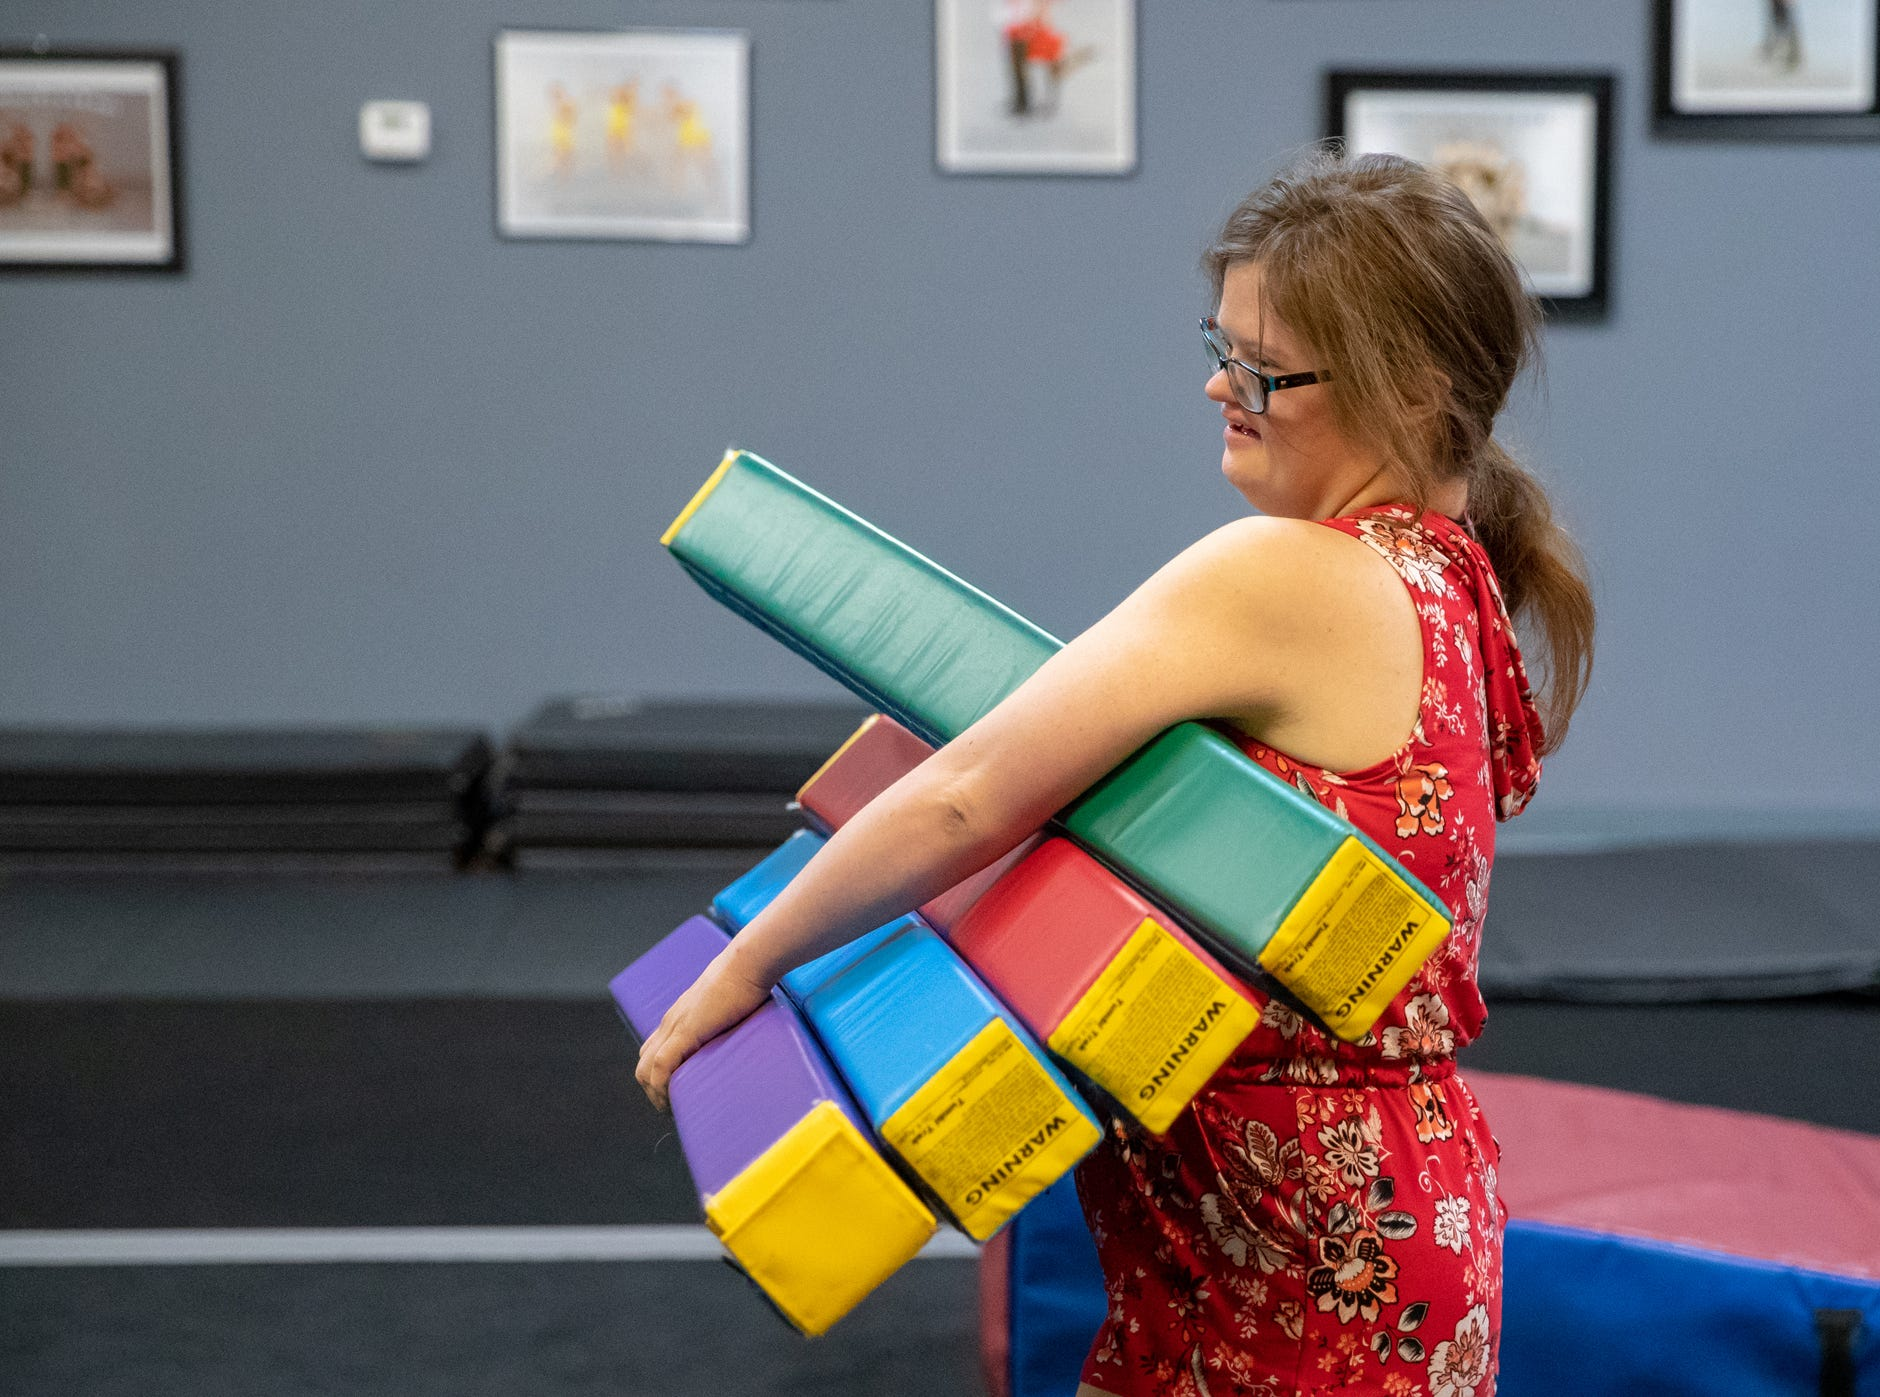 Mickey sets up for the obstacle course section of gymnastics class at Style Dance Academy in Franklin, Ind., on Tuesday, Oct. 9, 2018.